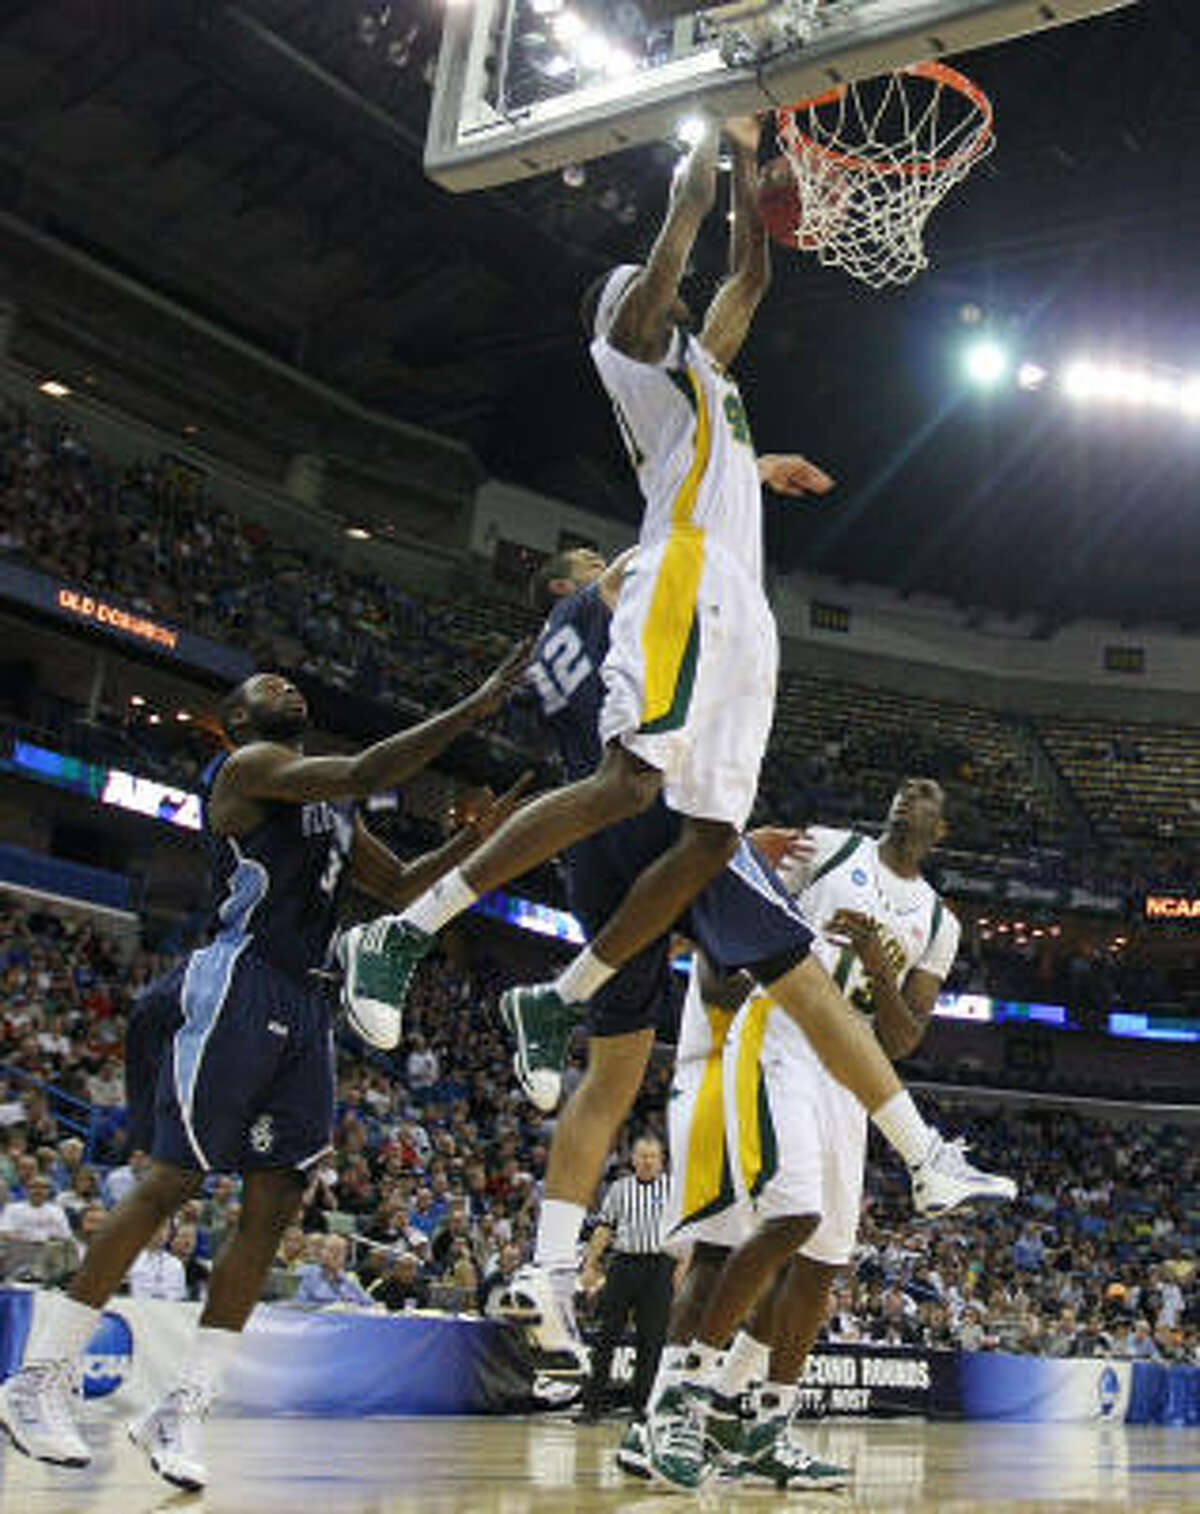 Baylor's Anthony Jones throws down a dunk.